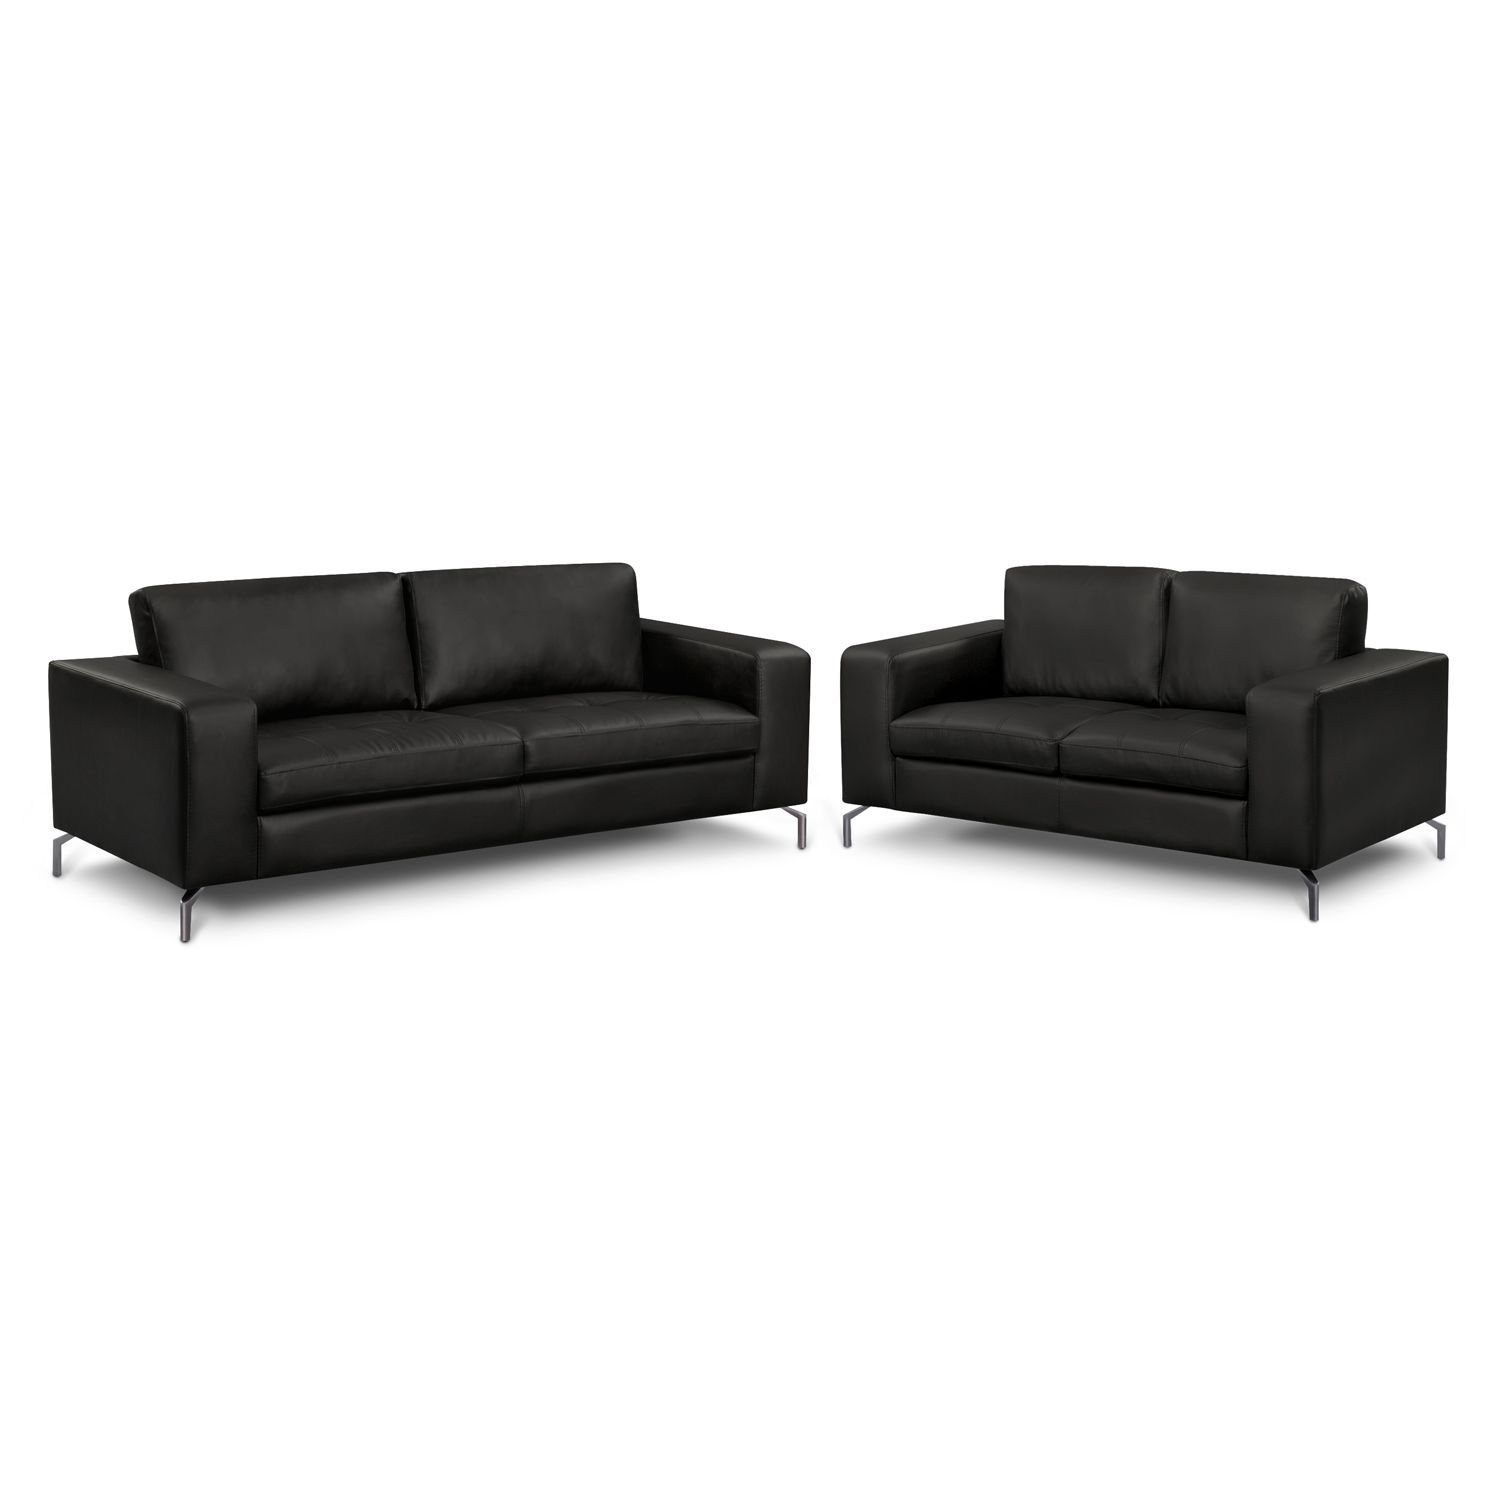 Living Room Furniture - Casino II 2 Pc. Living Room | Gina\'s Site ...